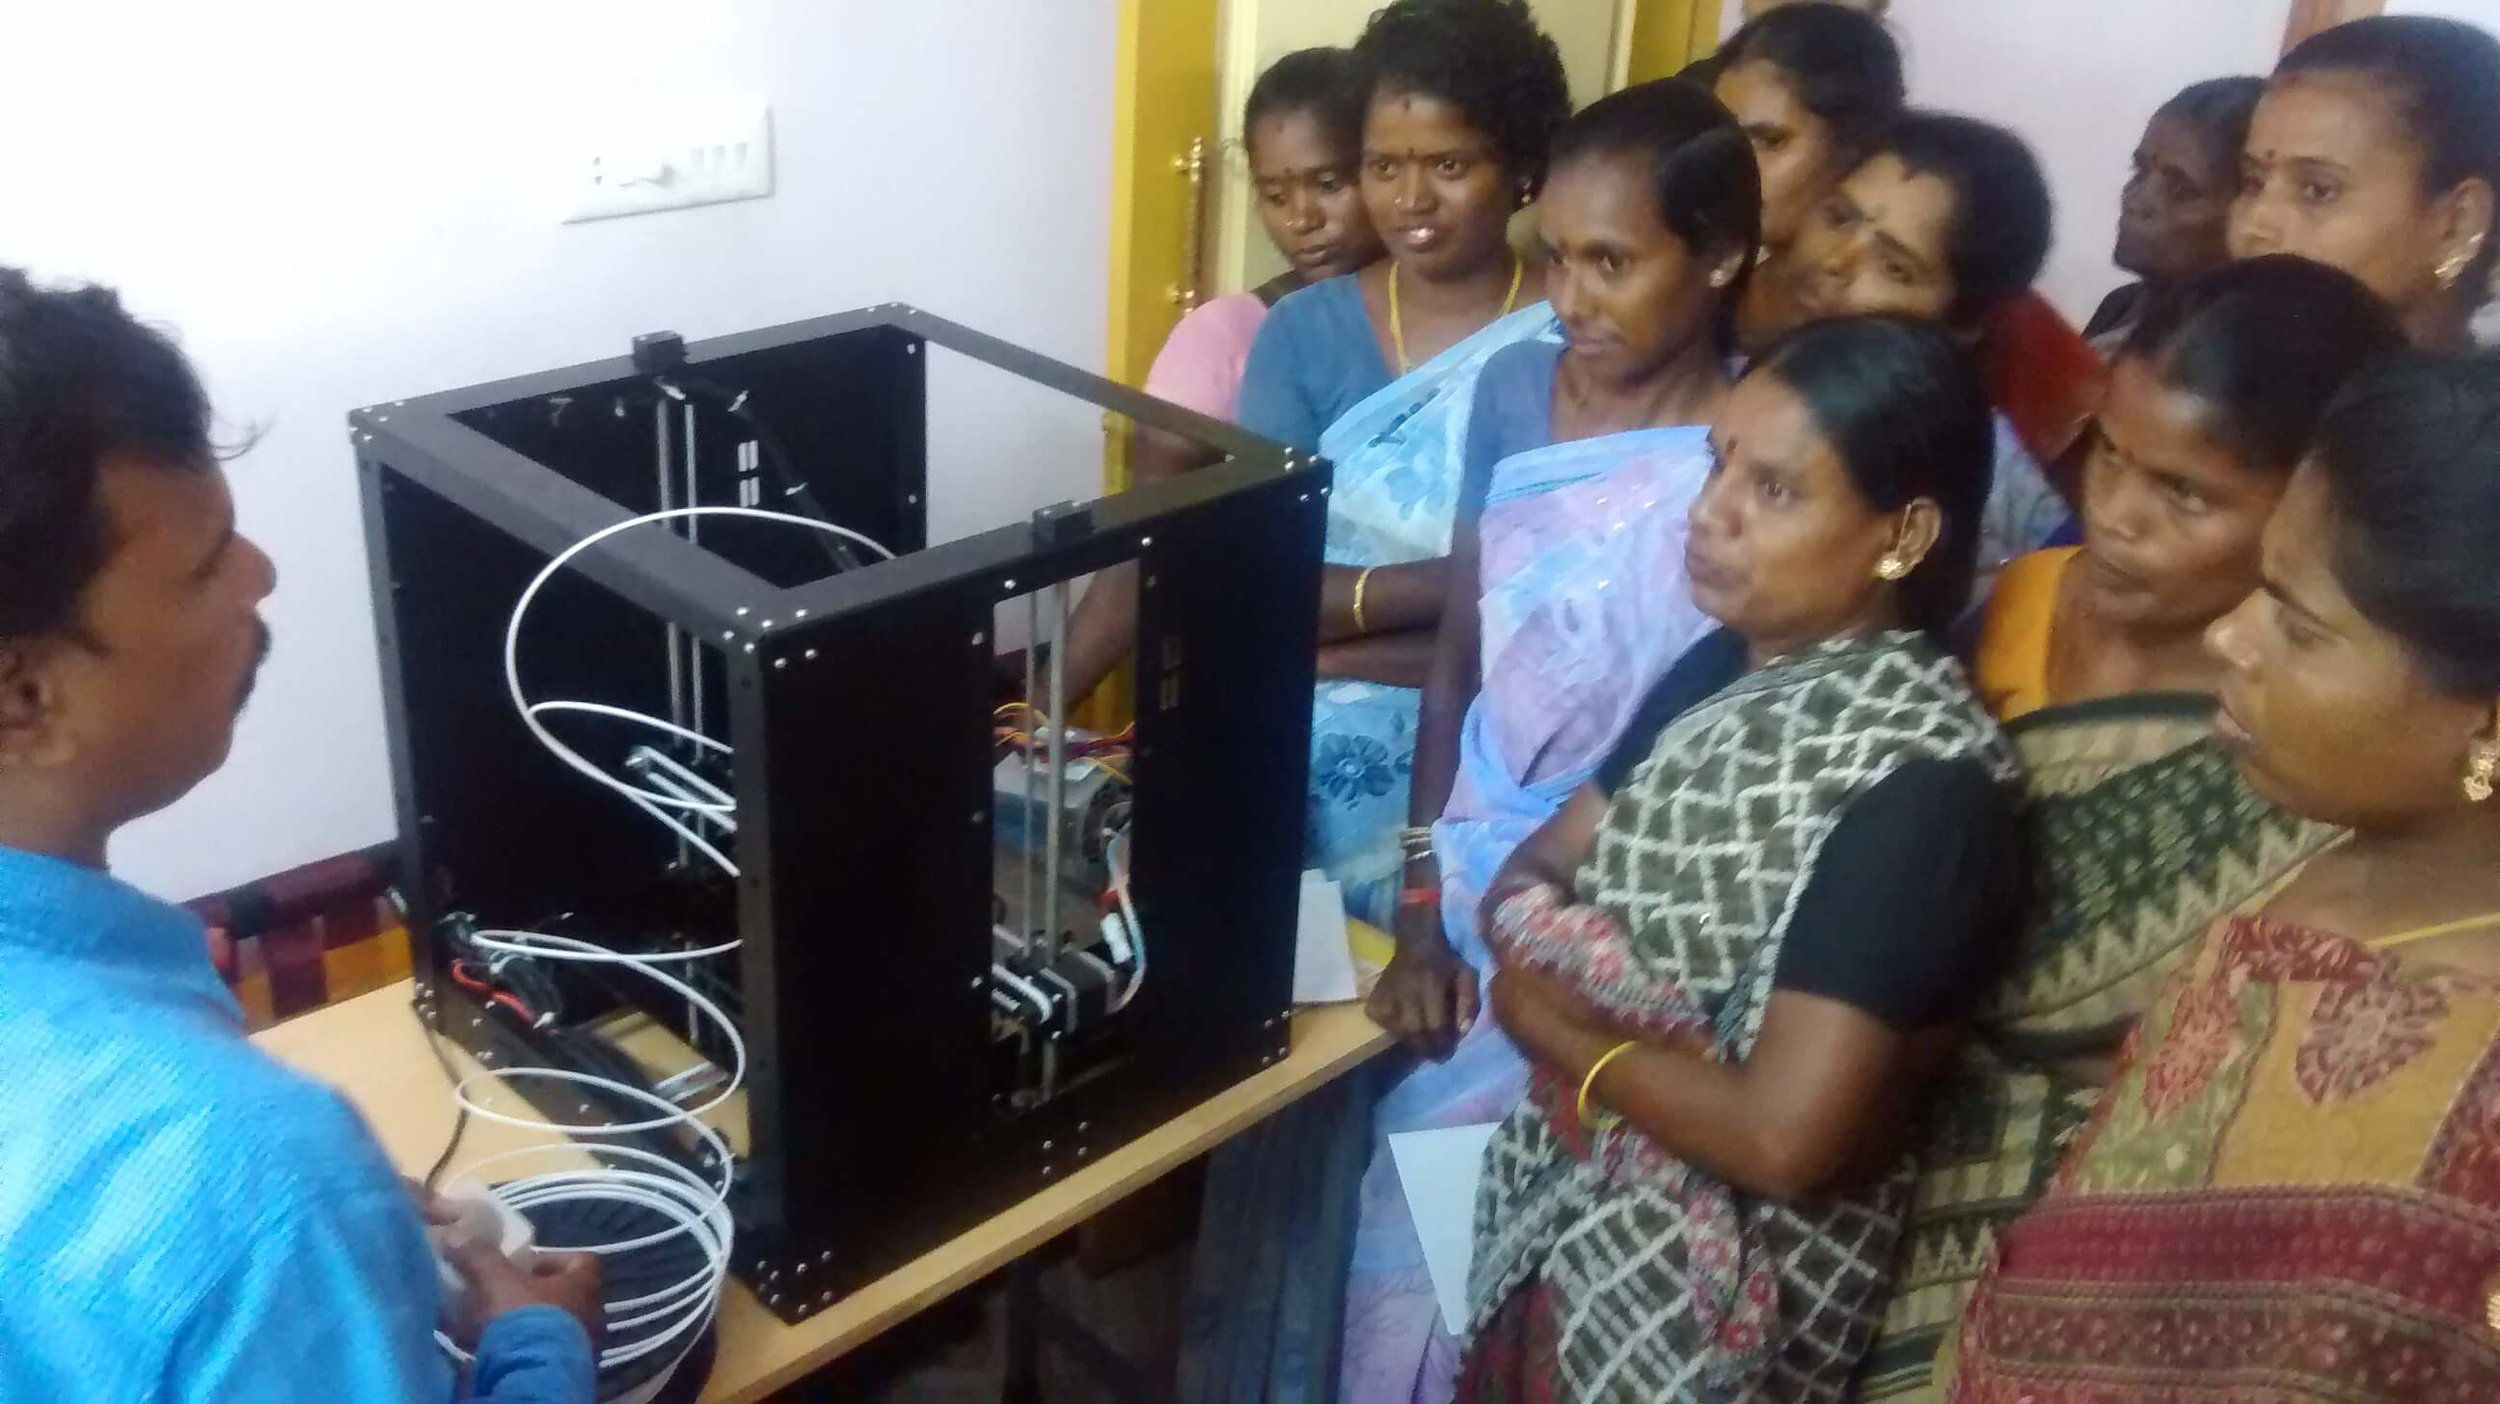 Villagers excited by the 3D printer installed in the village